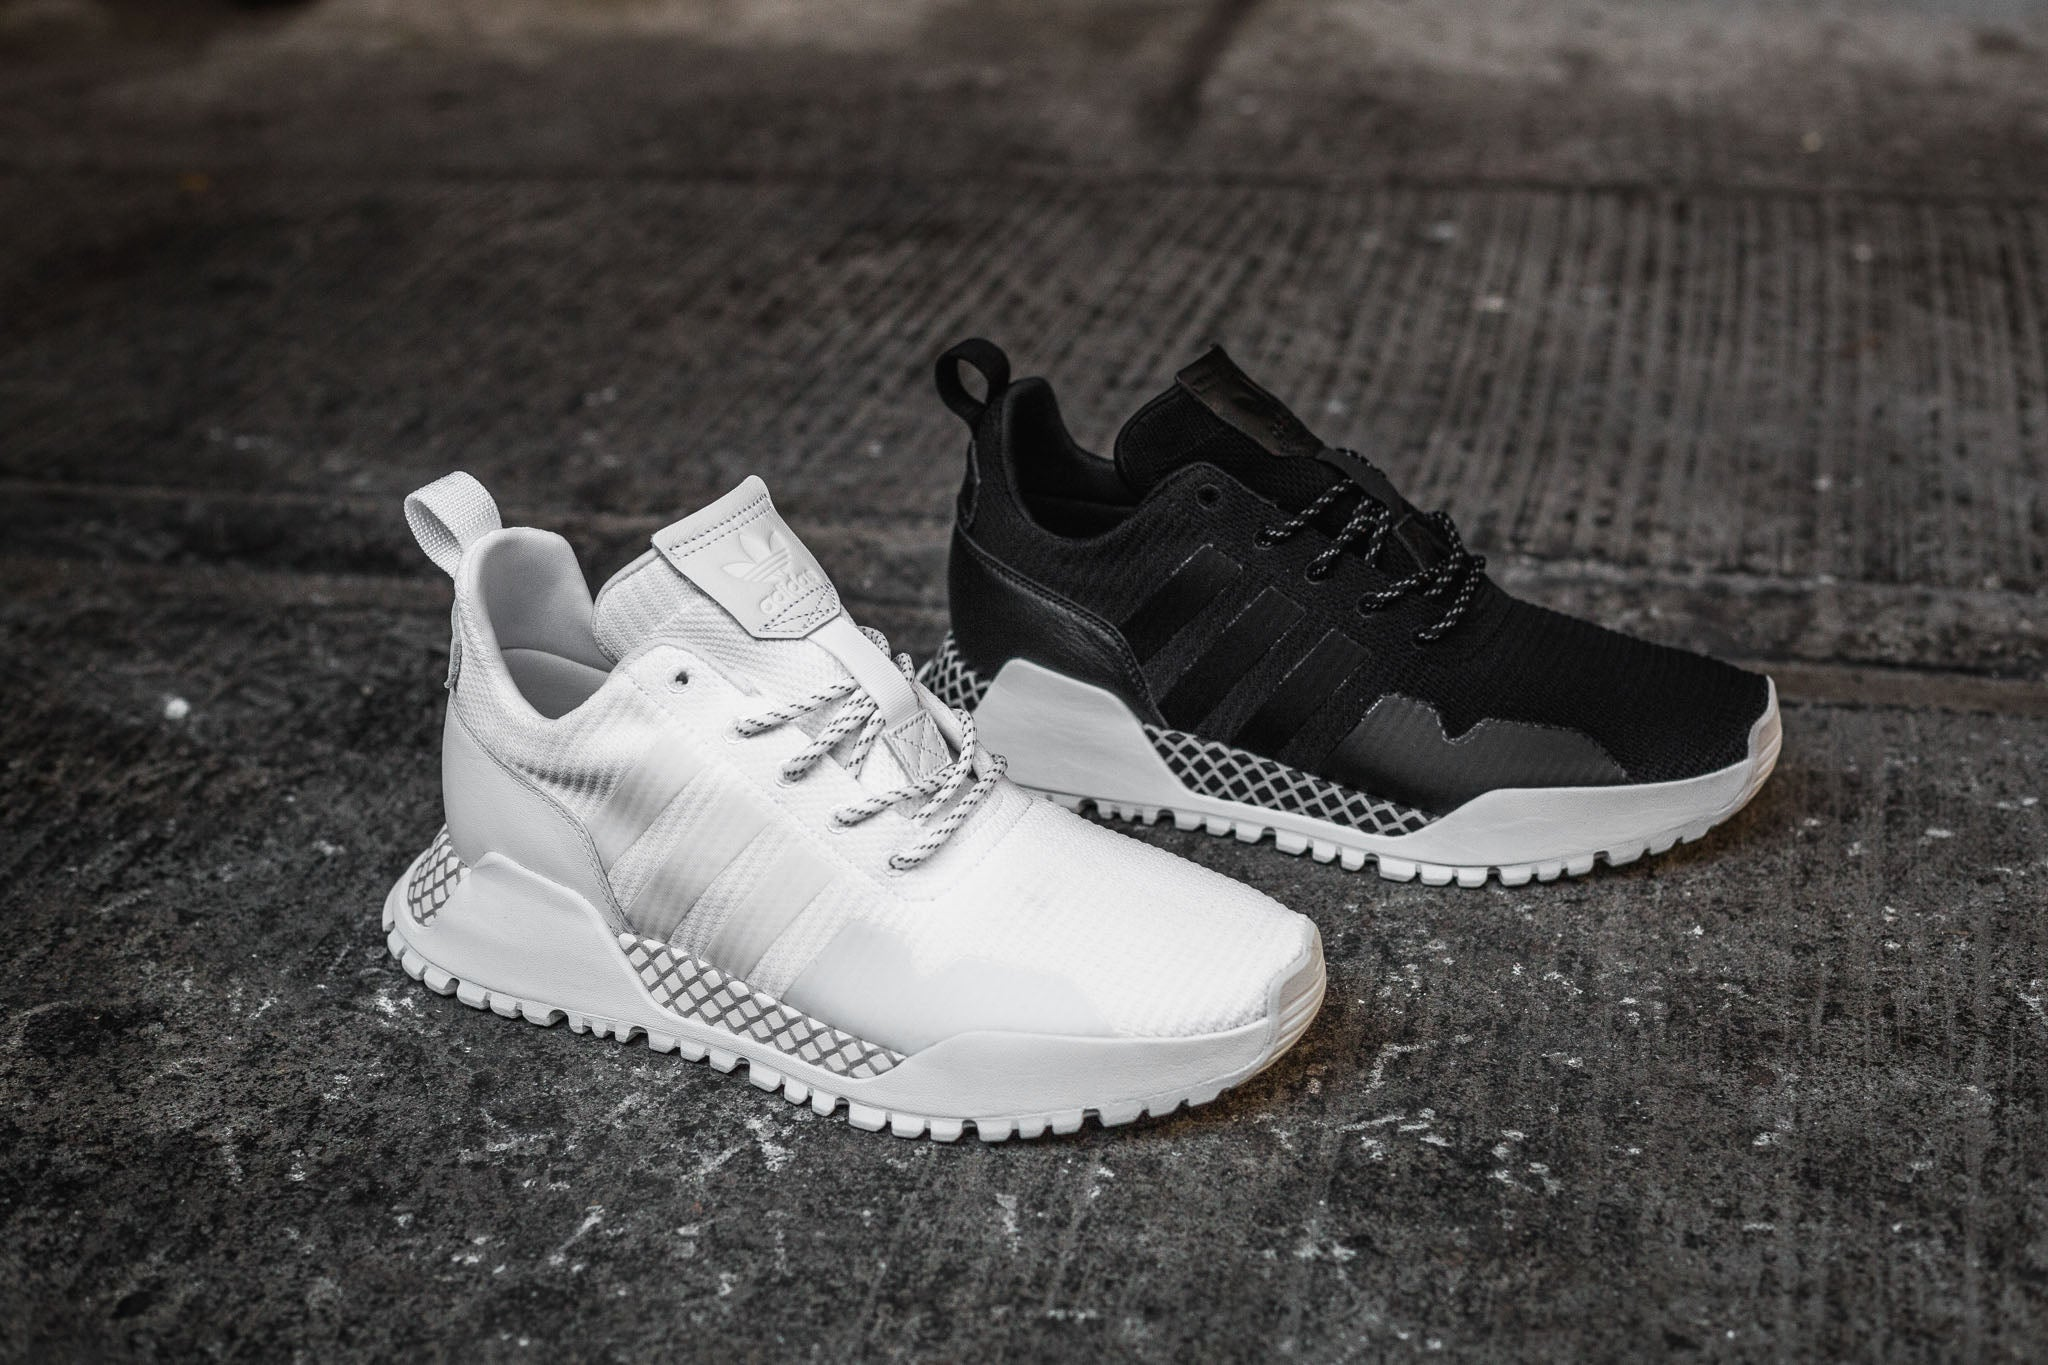 buy online 2fa8e 19287 Inspired by the unpredictable weather conditions of winter, adidas  Originals introduces two new silhouettes this season designed to stand up  to whatever the ...